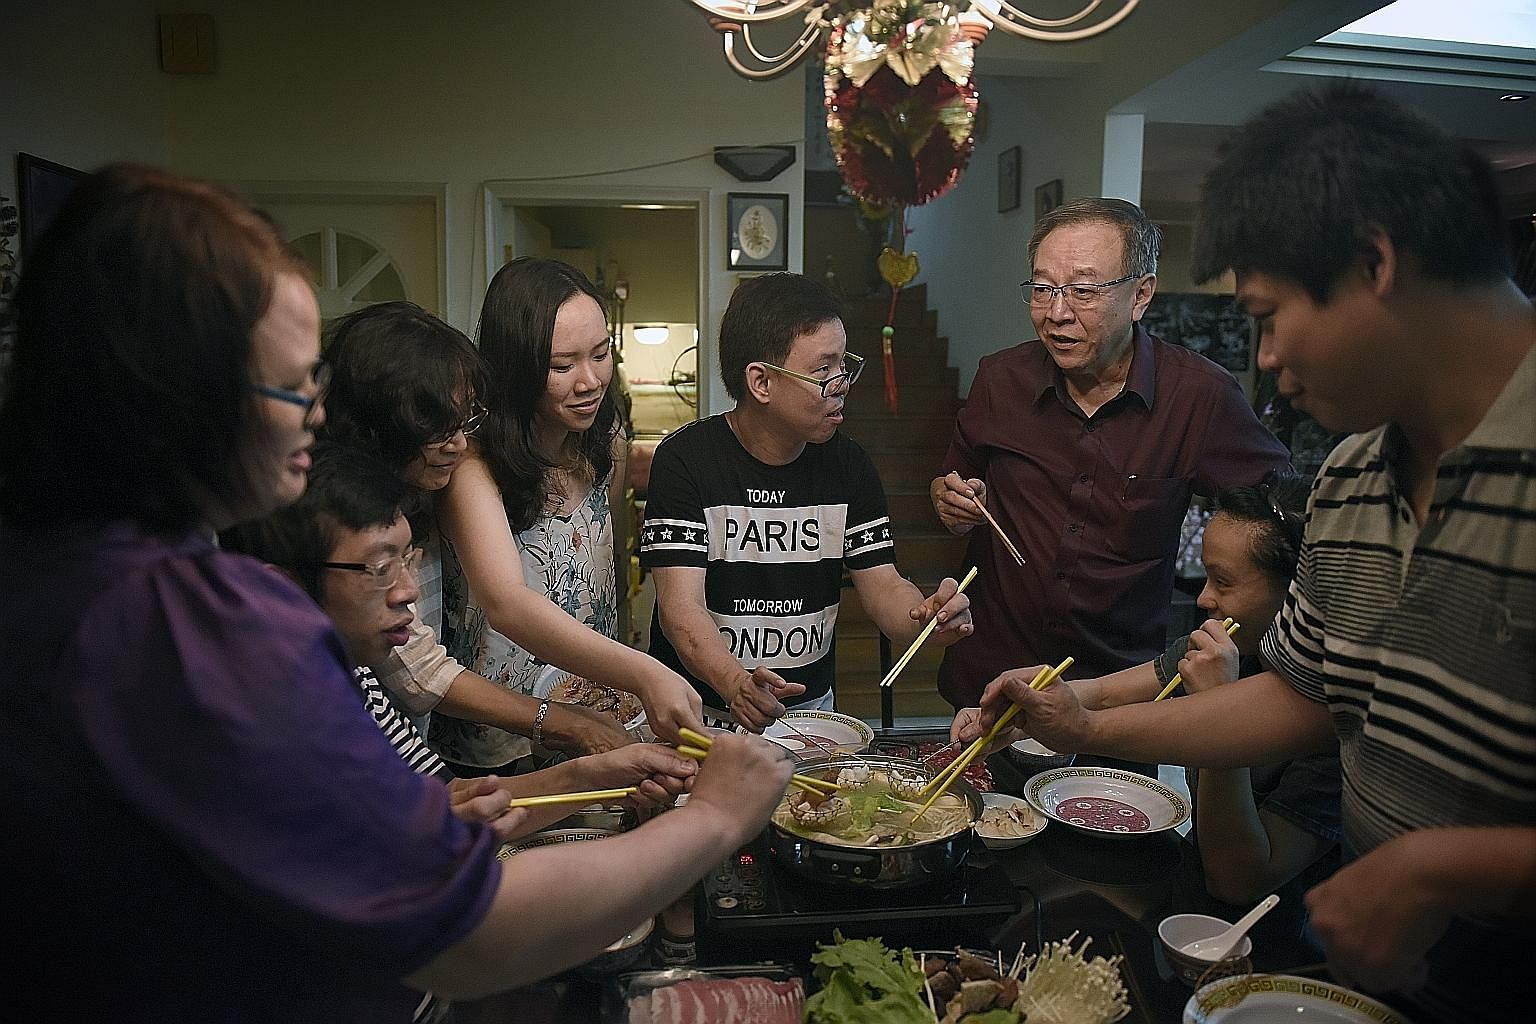 Mr Keh (in maroon shirt) at the reunion dinner with (from left) Ms Yap, Mr Low Boon Chin, Mr Keh's wife Geok Lian and daughter Yu Jia, Mr Tham, Ms Lim Bee Hong and Mr Benny Sun.